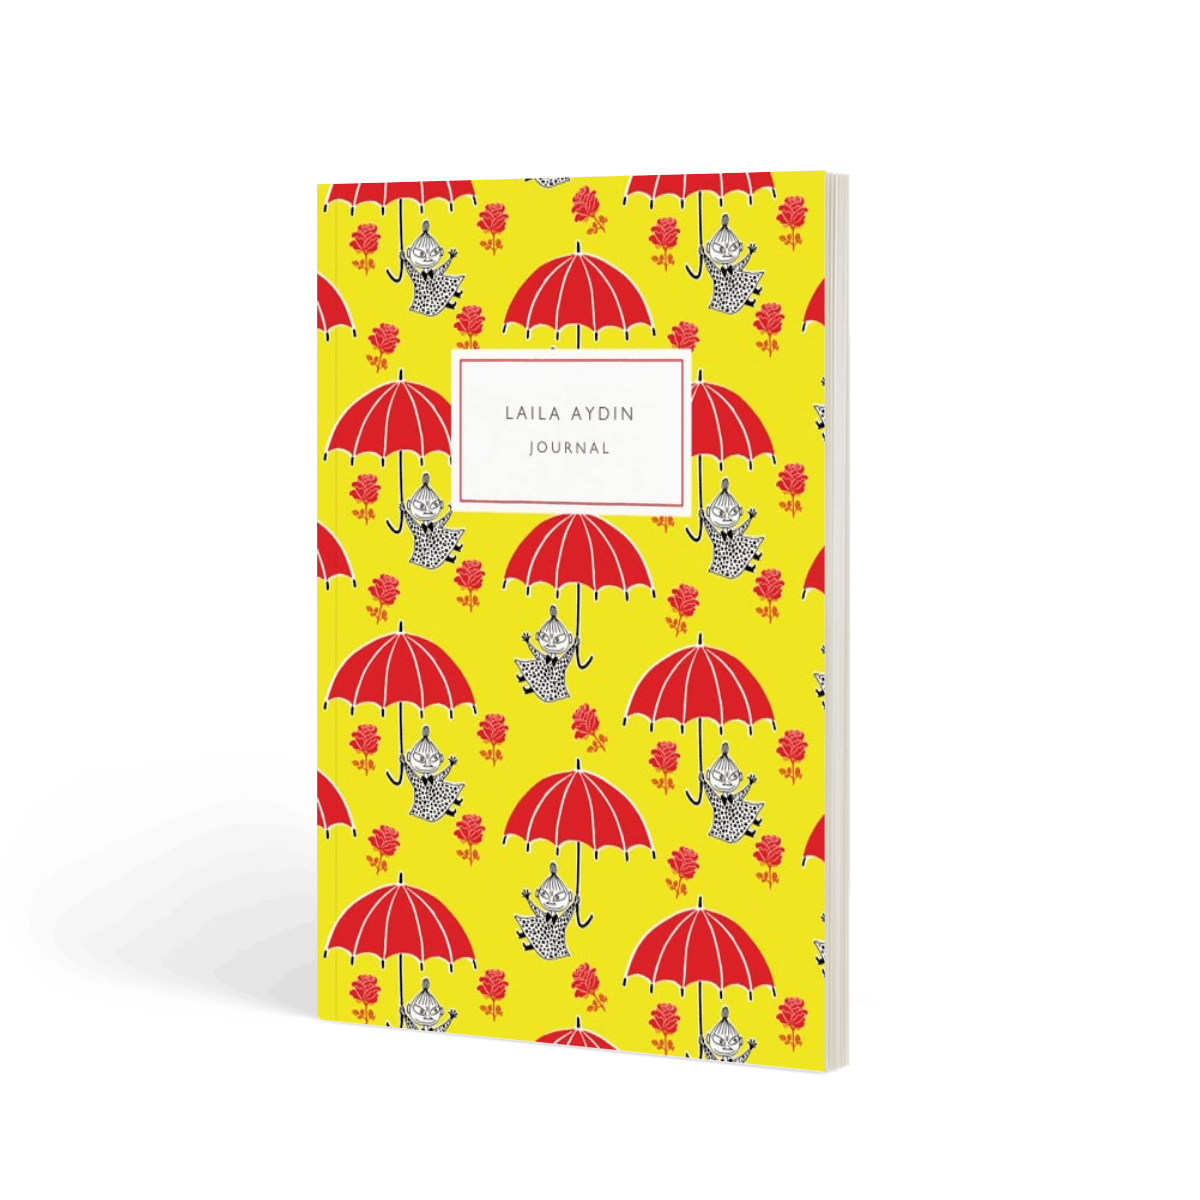 Https%3a%2f%2fwww.papier.com%2fproduct image%2f22861%2f6%2flittle my with umbrella 5743 front 1495188979.png?ixlib=rb 1.1